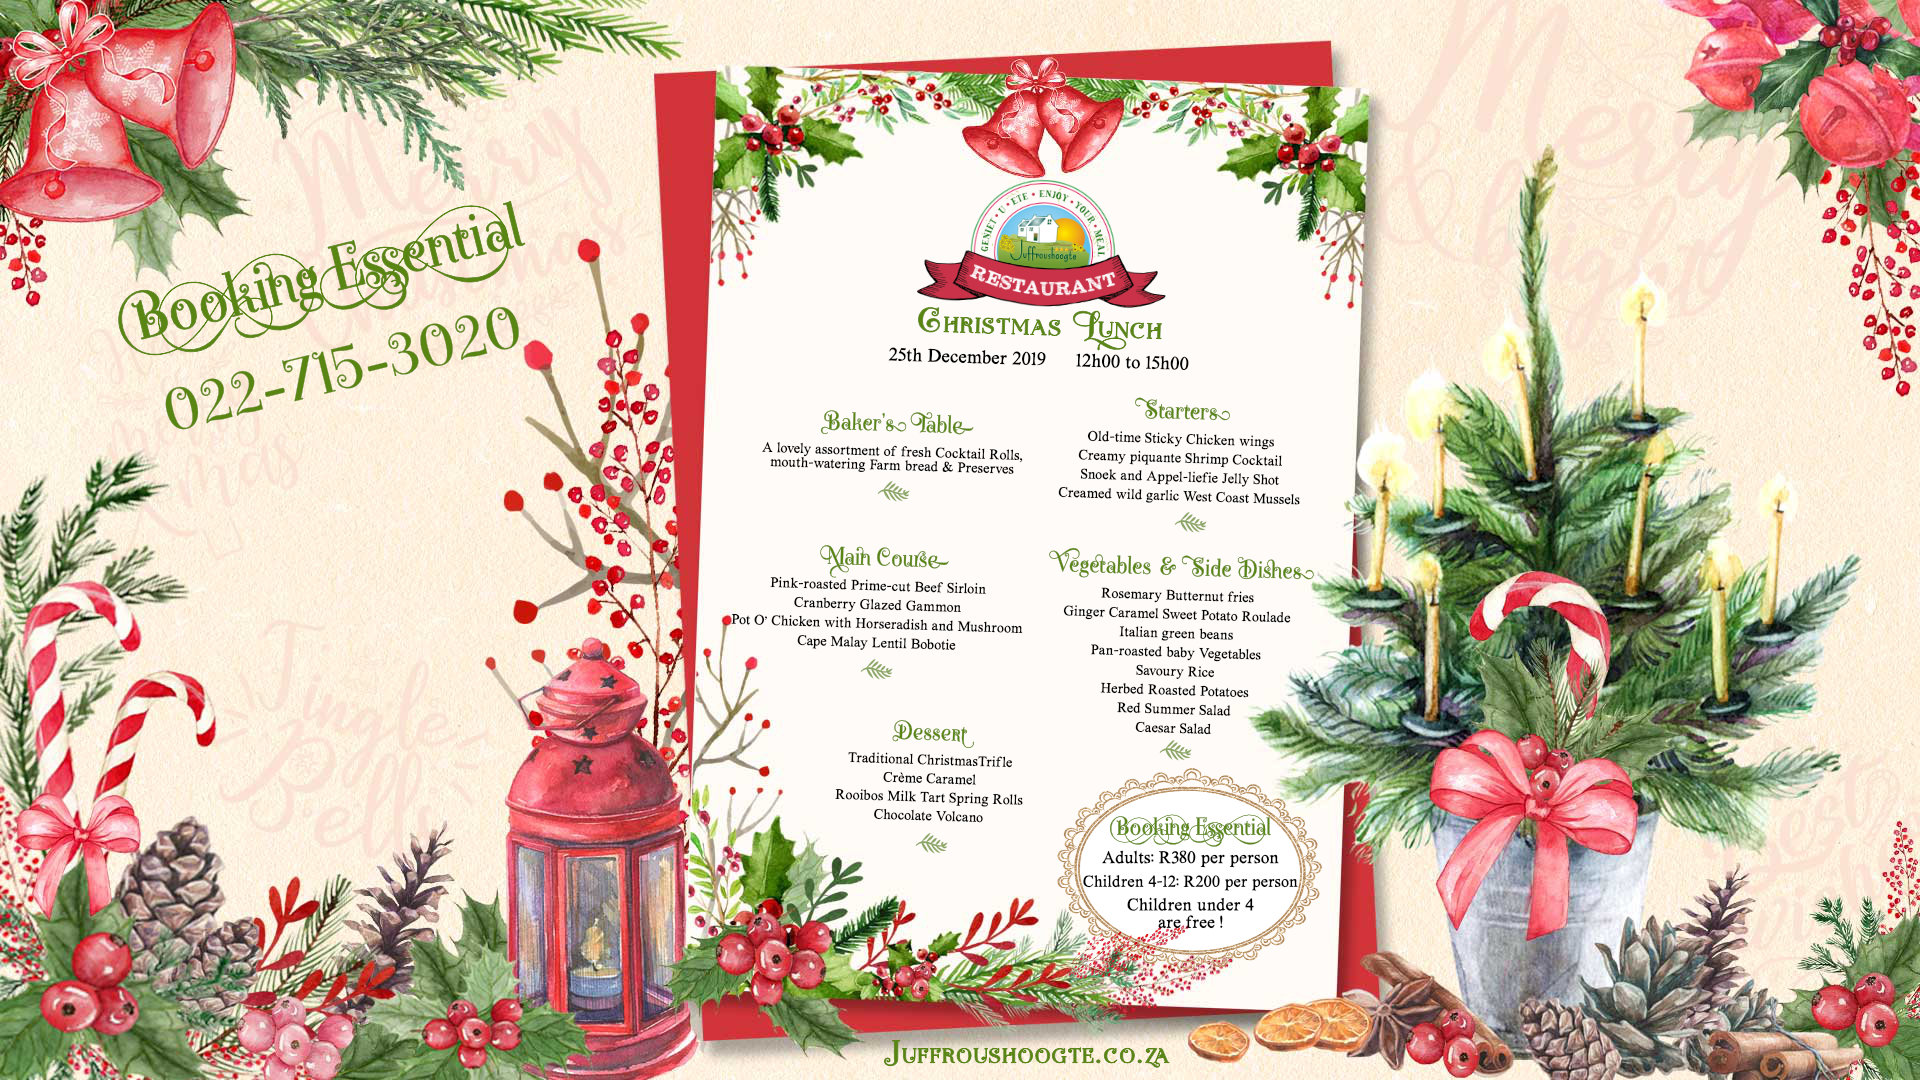 Have a delicious Xmas Lunch at Juffroushoogte